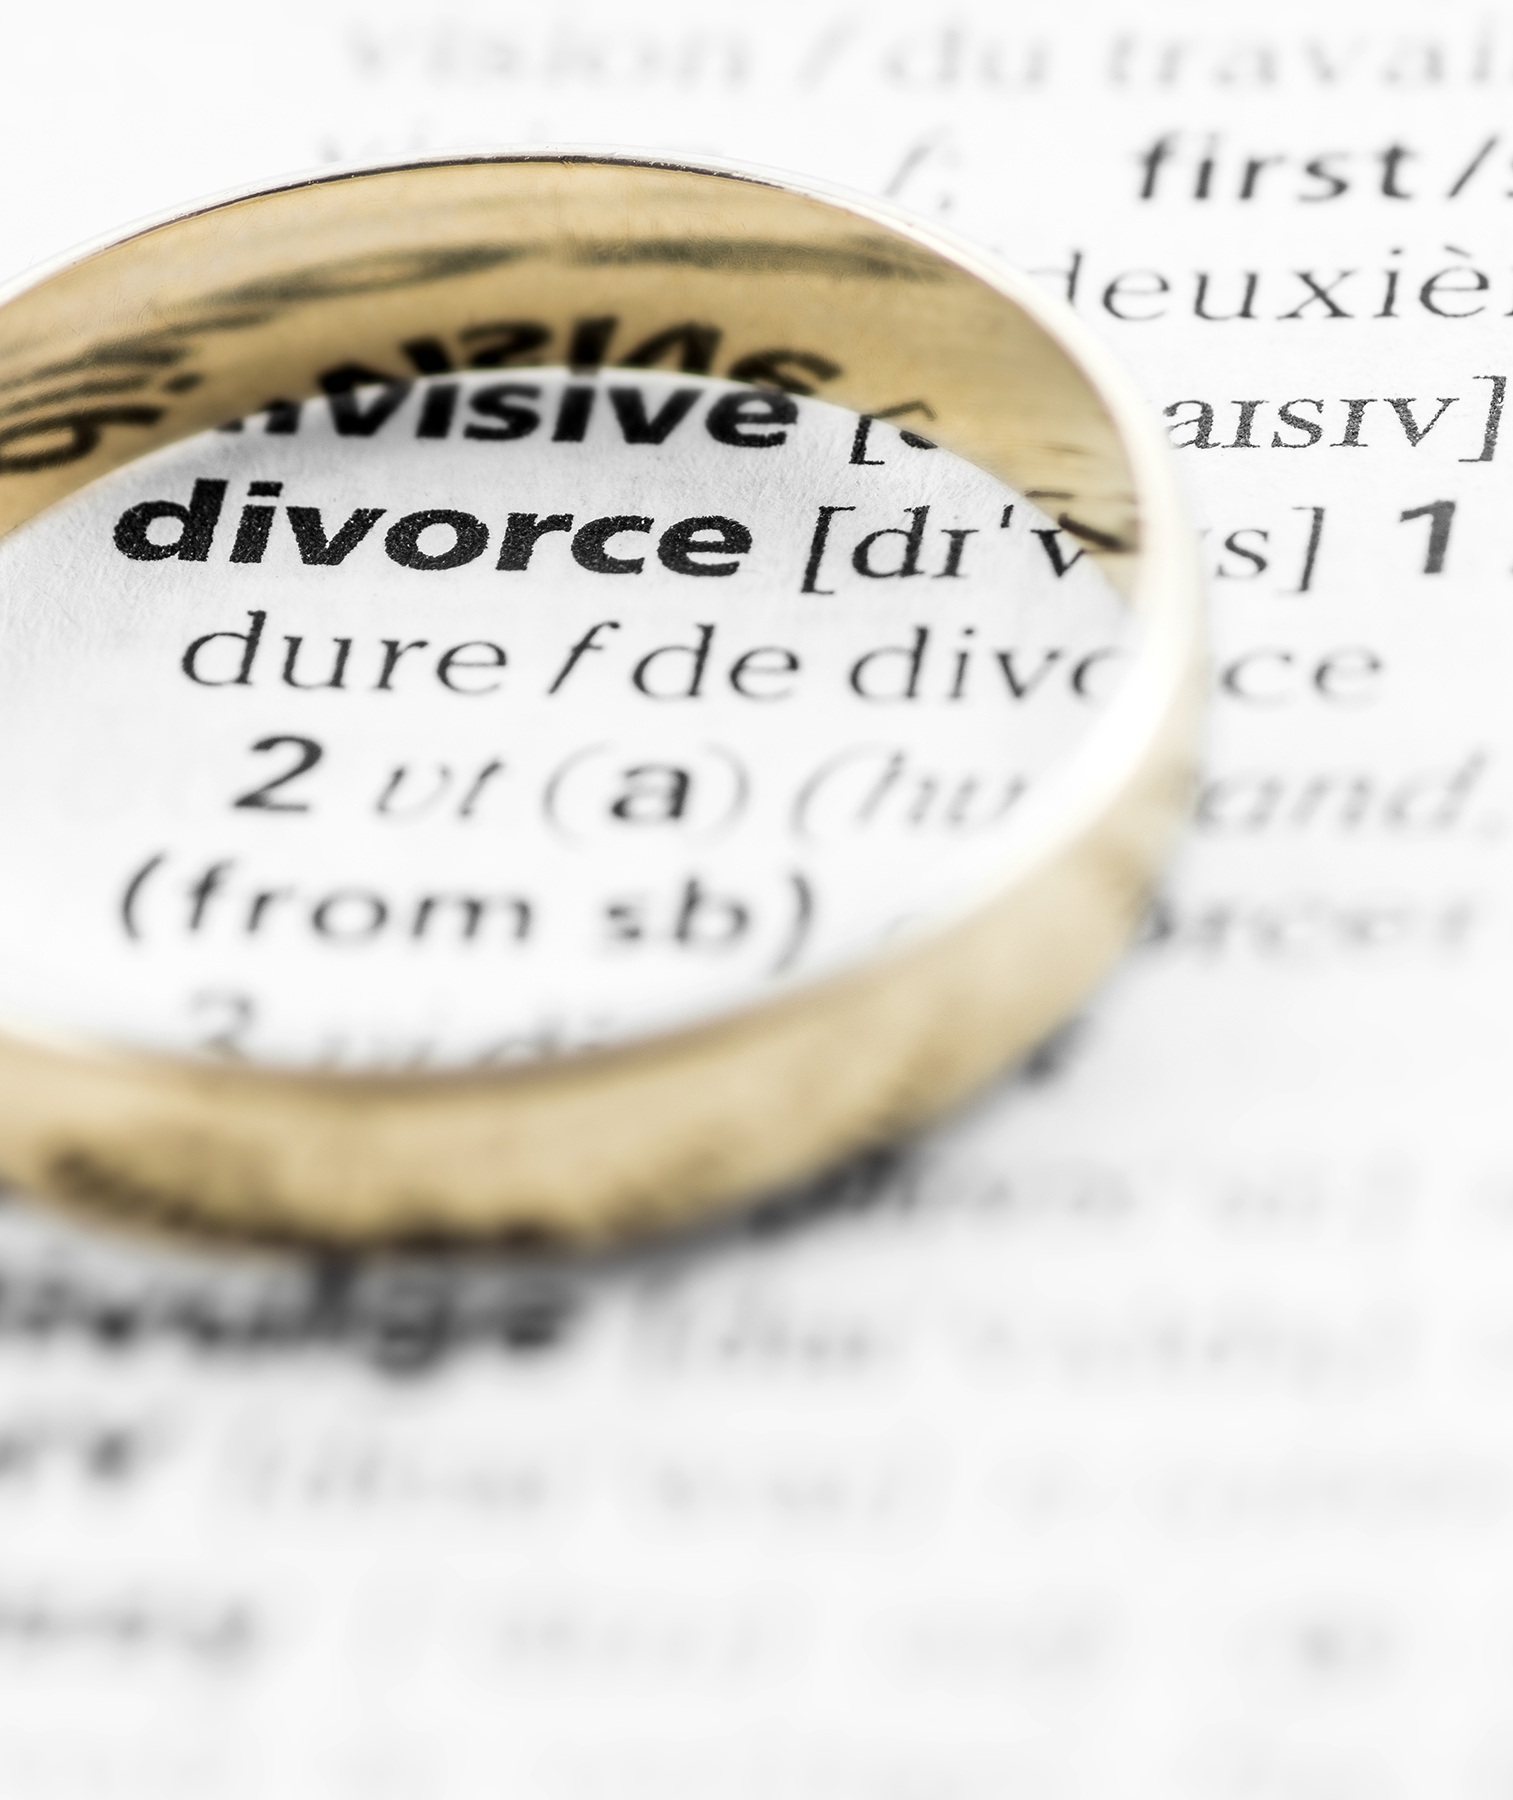 Wedding ring sitting on divorce entry of the dictionary